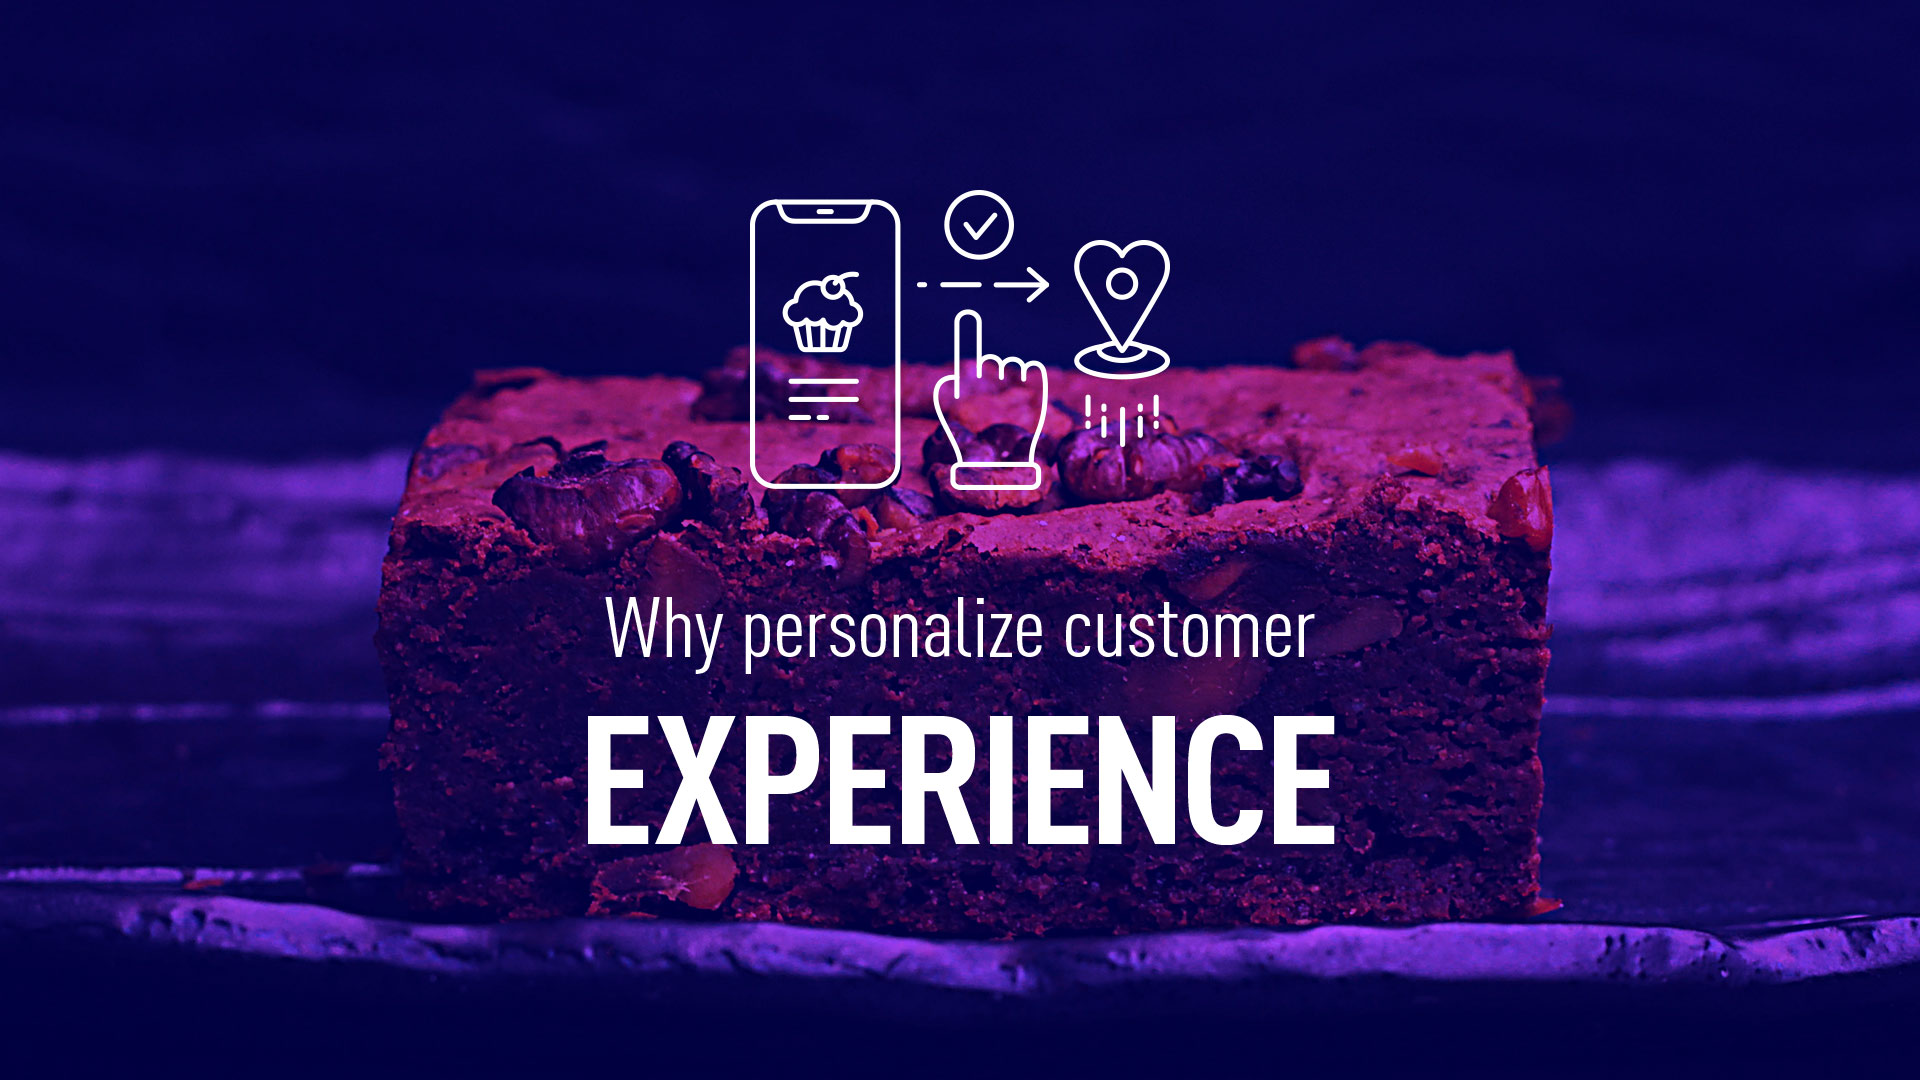 Personalized experience